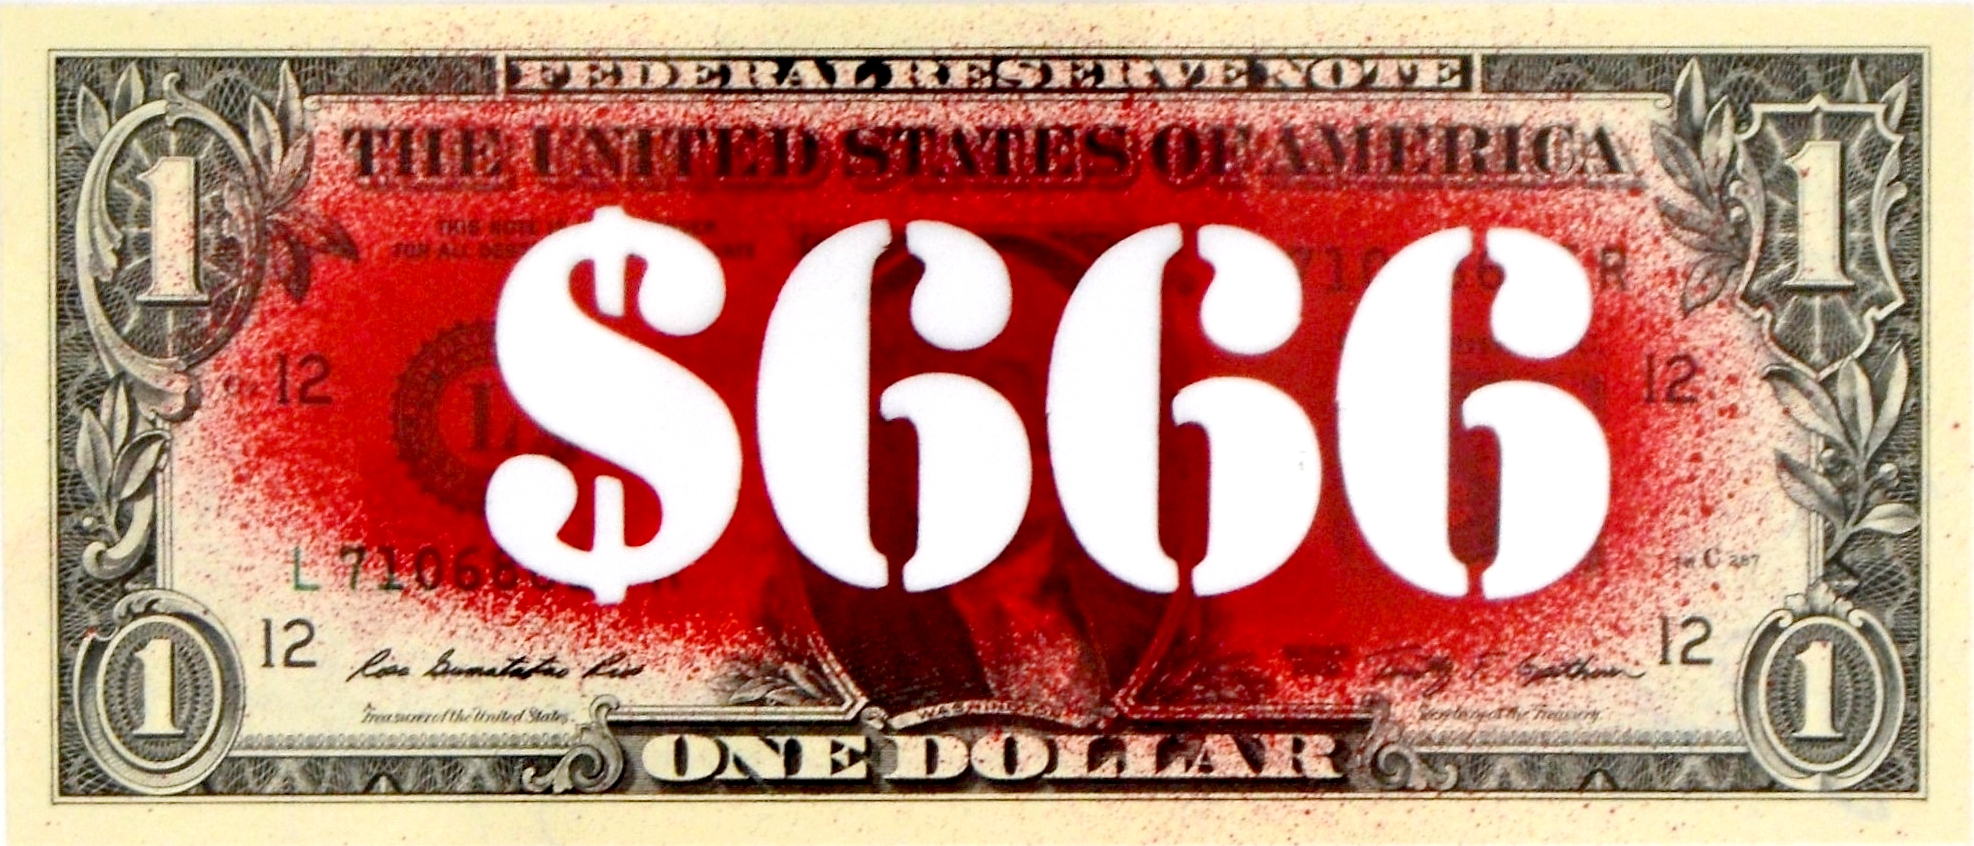 Death nyc 666 red 1 banknote dat 2013 et sign au for Unique dates in nyc